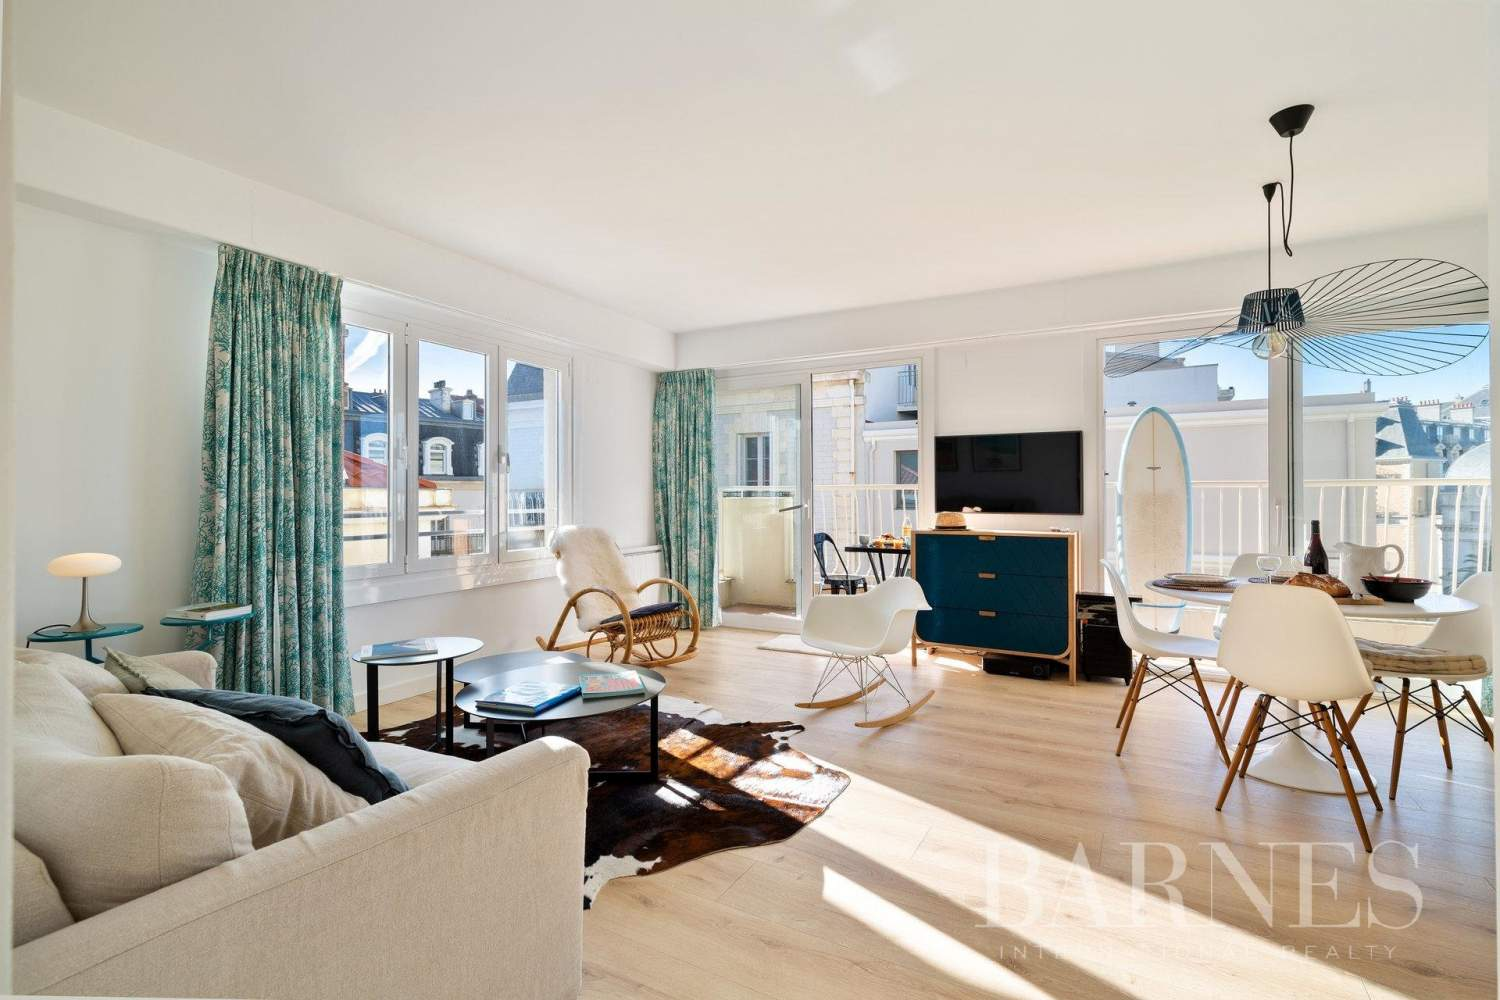 BELLEVUE - BIARRITZ, APARTMENT WITH SEA VIEW & BALCONY picture 2